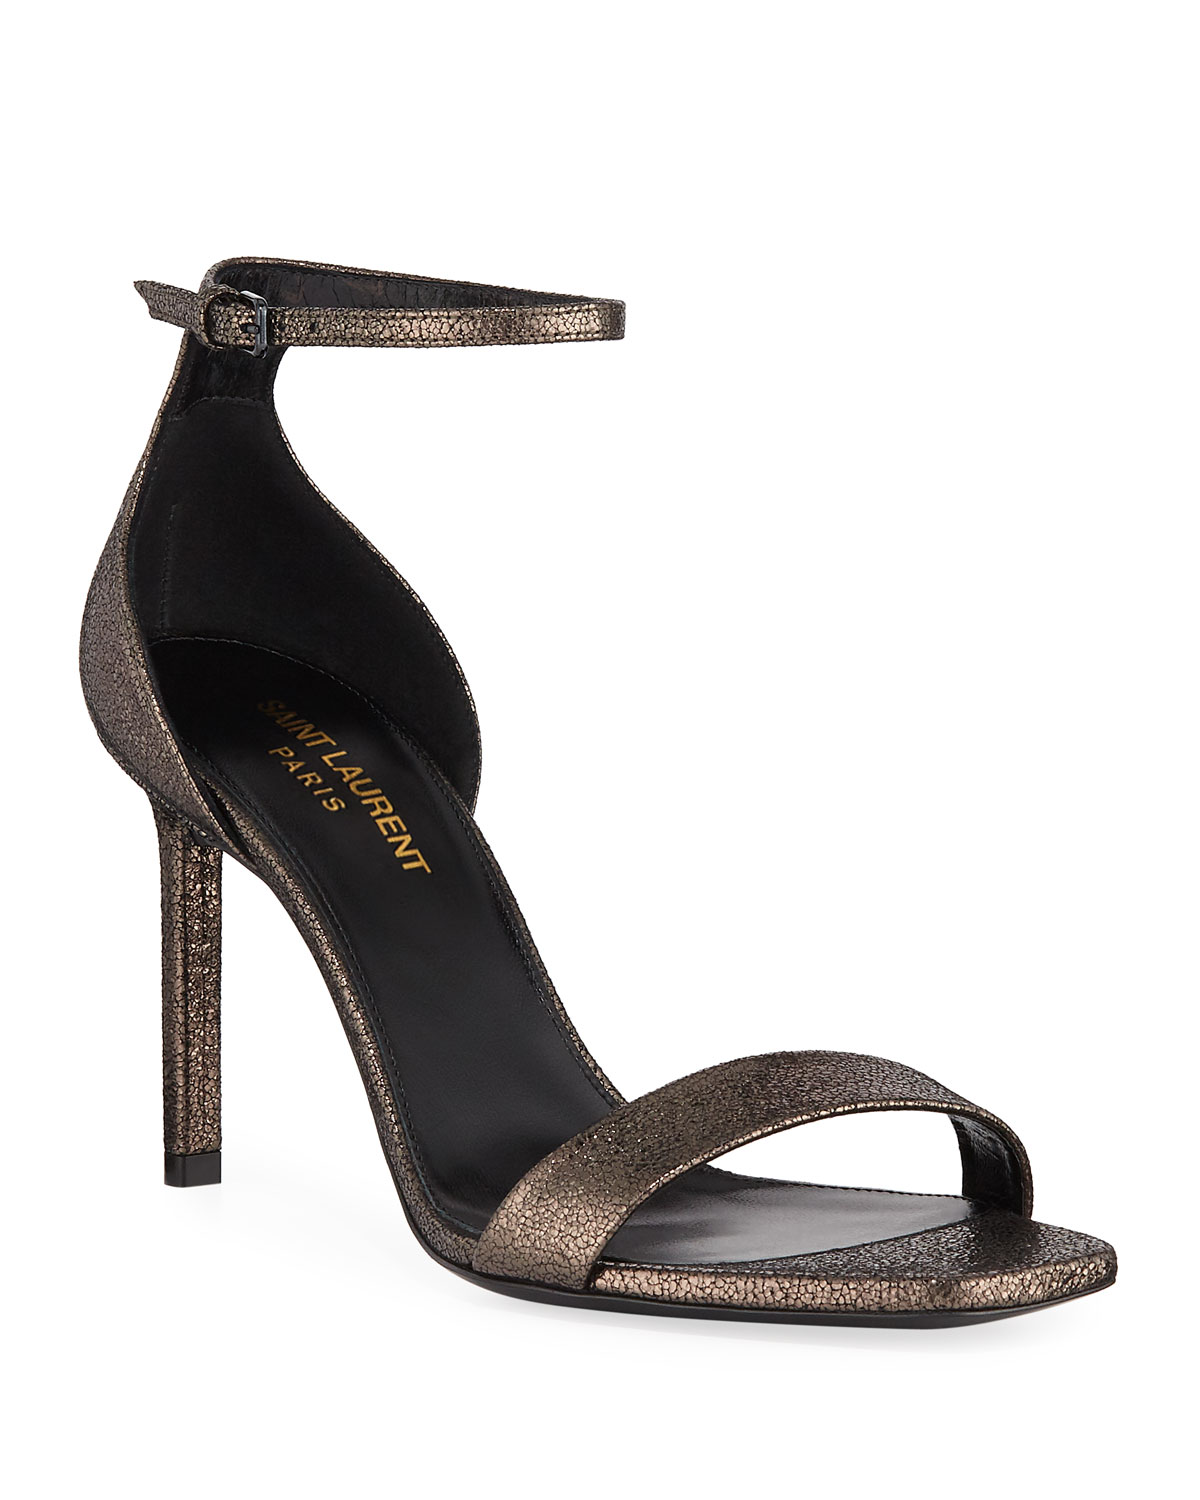 Amber Metallic Ankle-Wrap Sandals